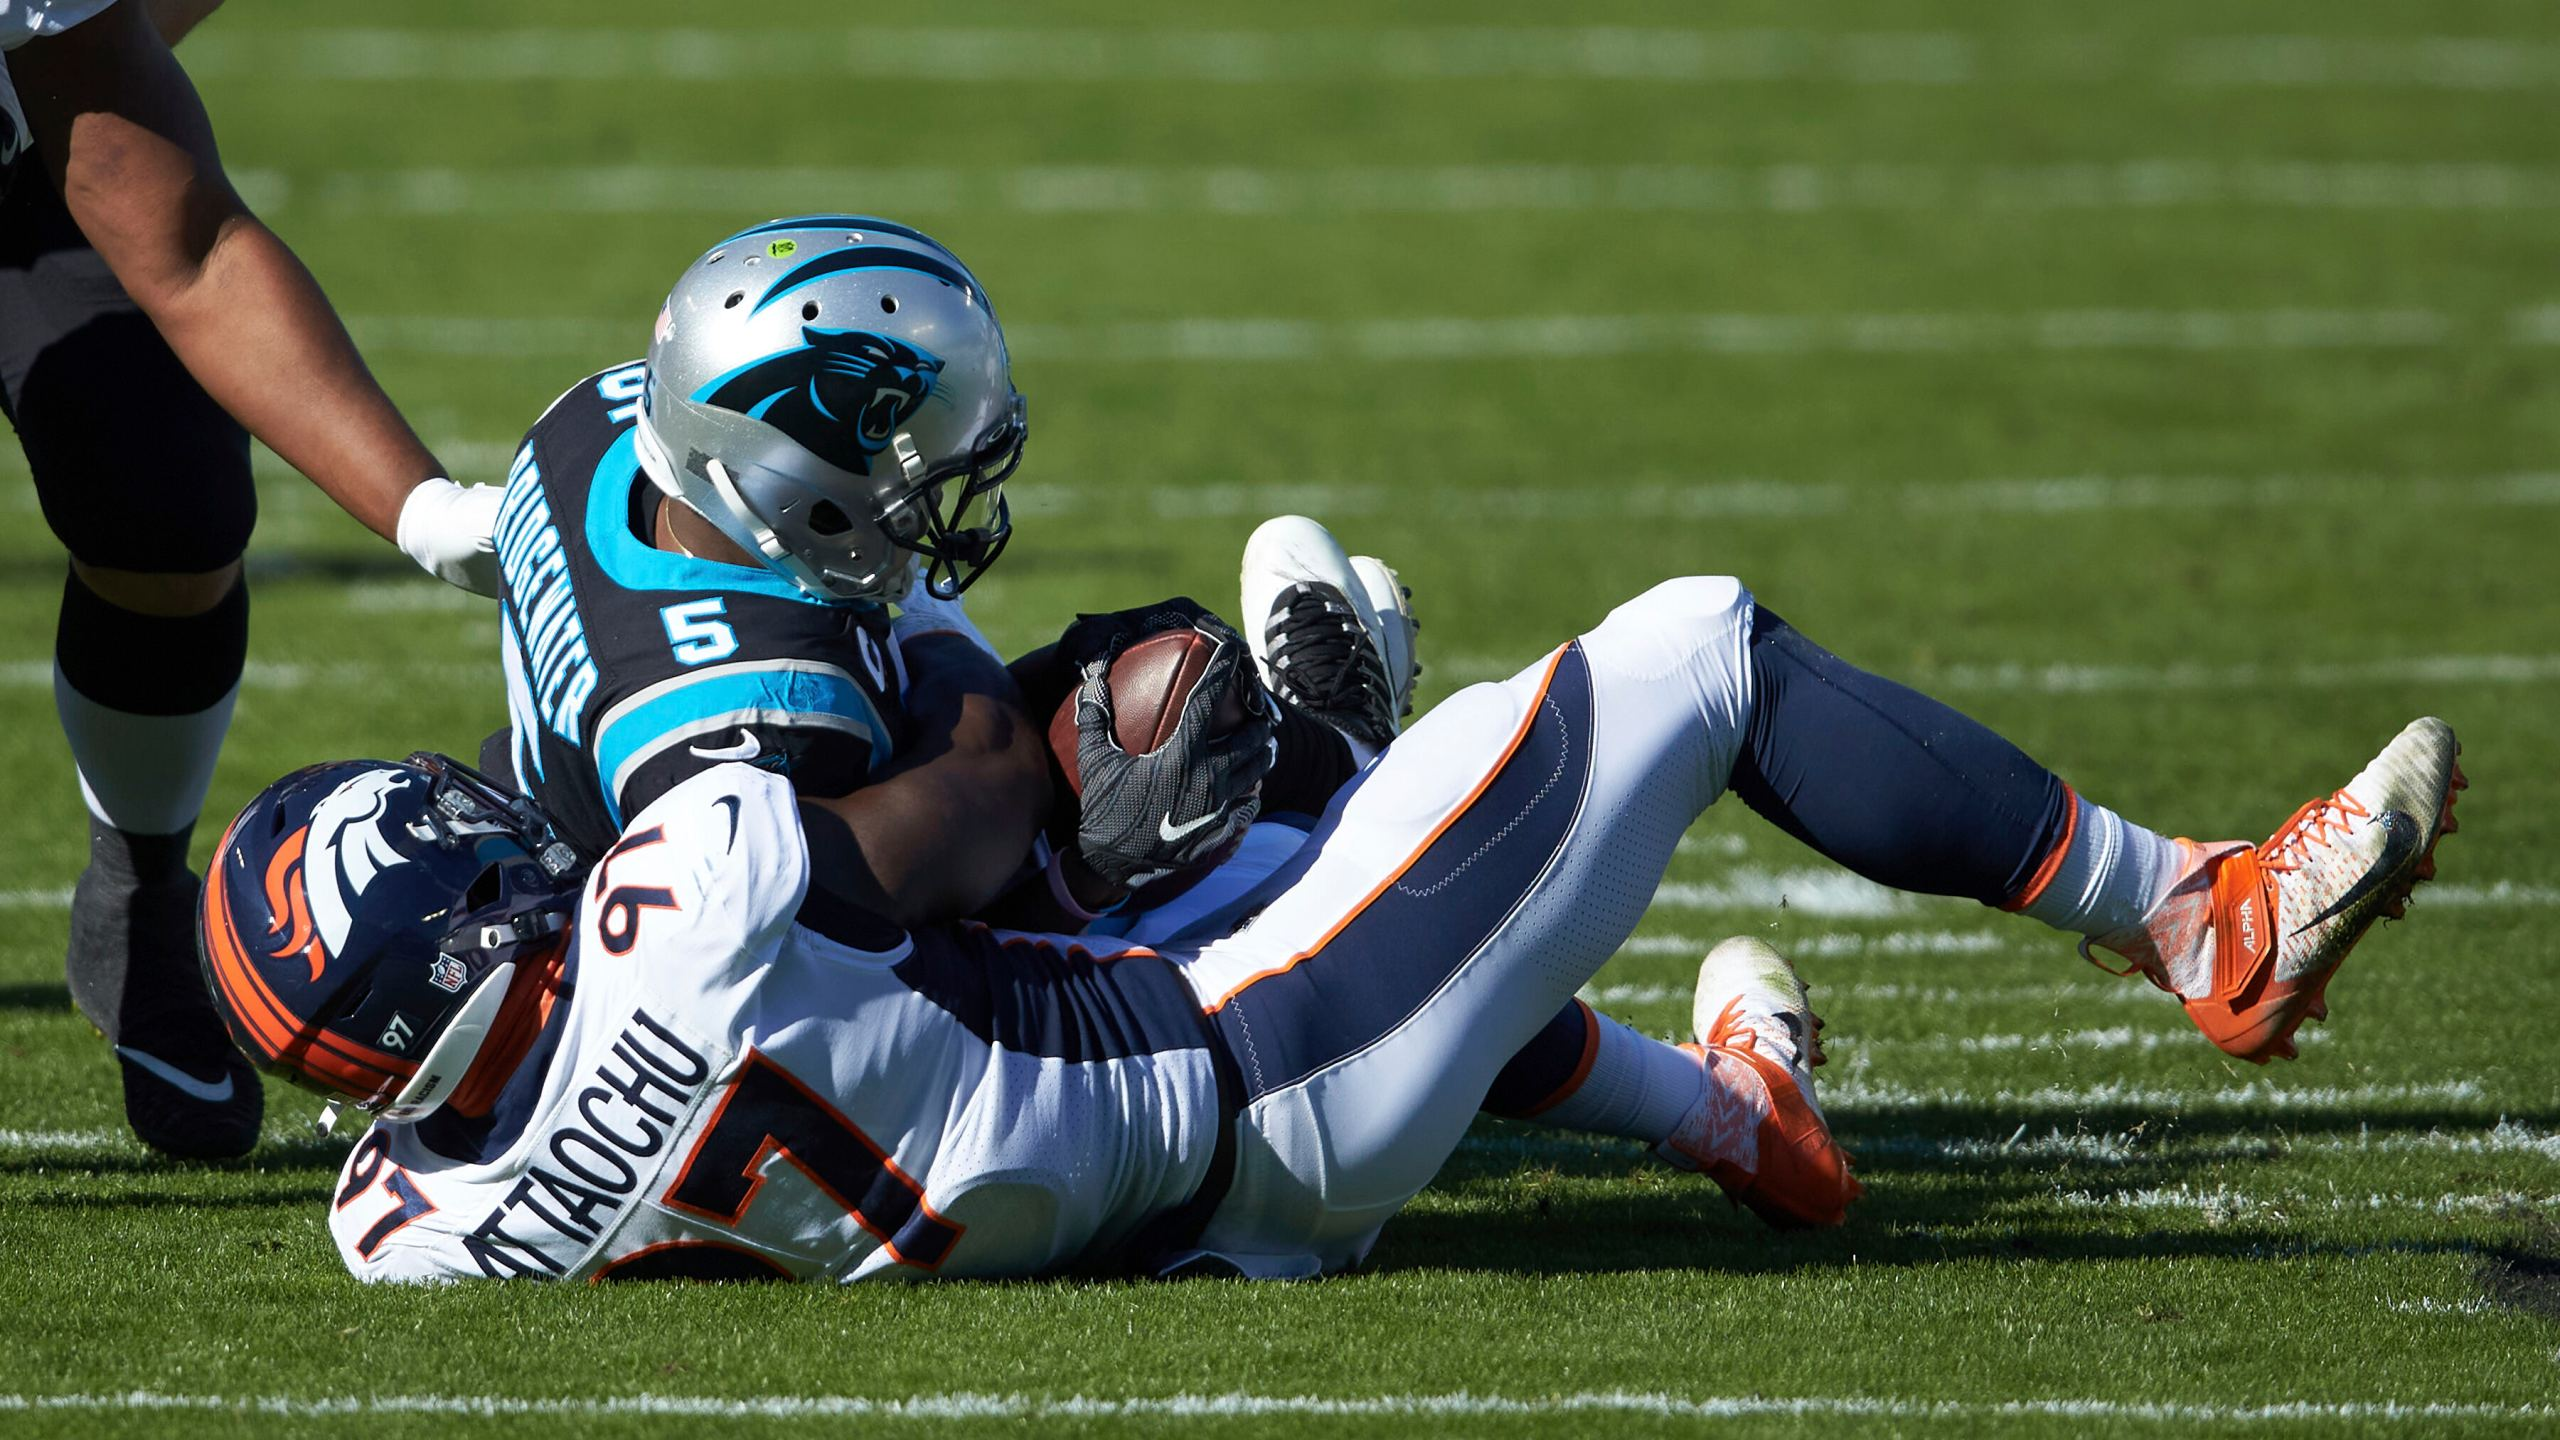 Bills face 'another test' against Broncos top ranked red zone defense    NEWS10 ABC